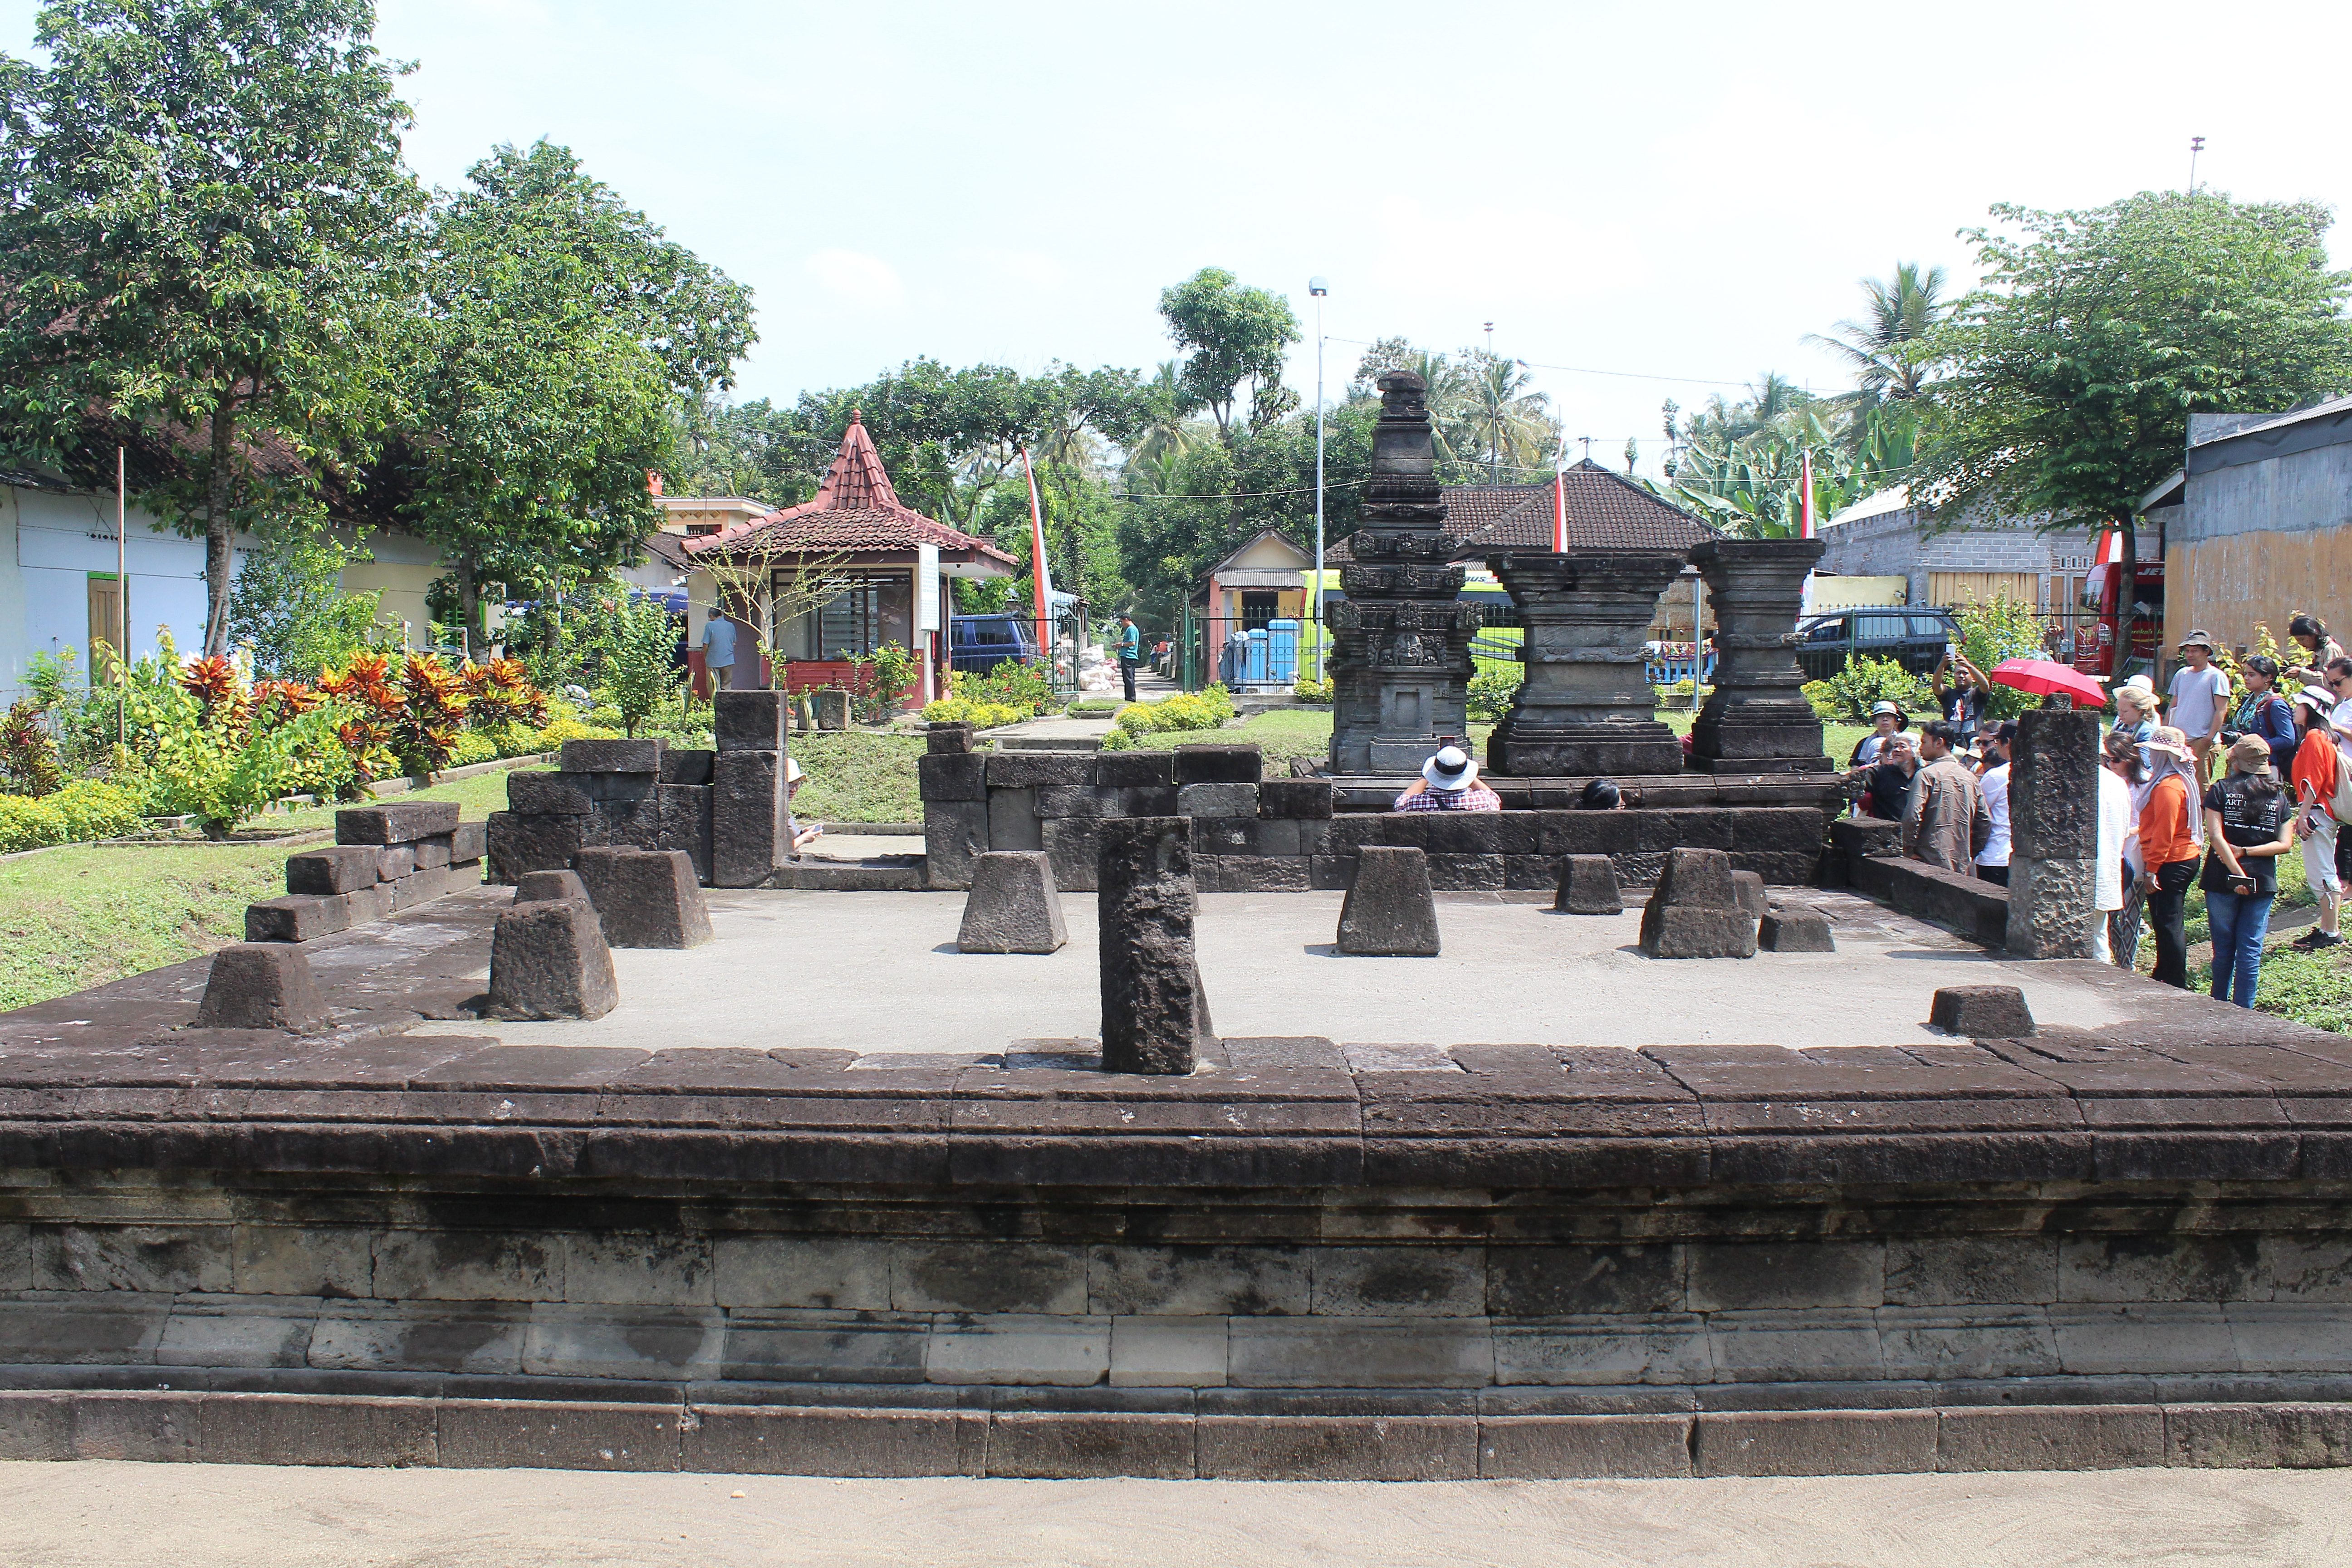 Sparsely remaining temple with cluster of people to the right